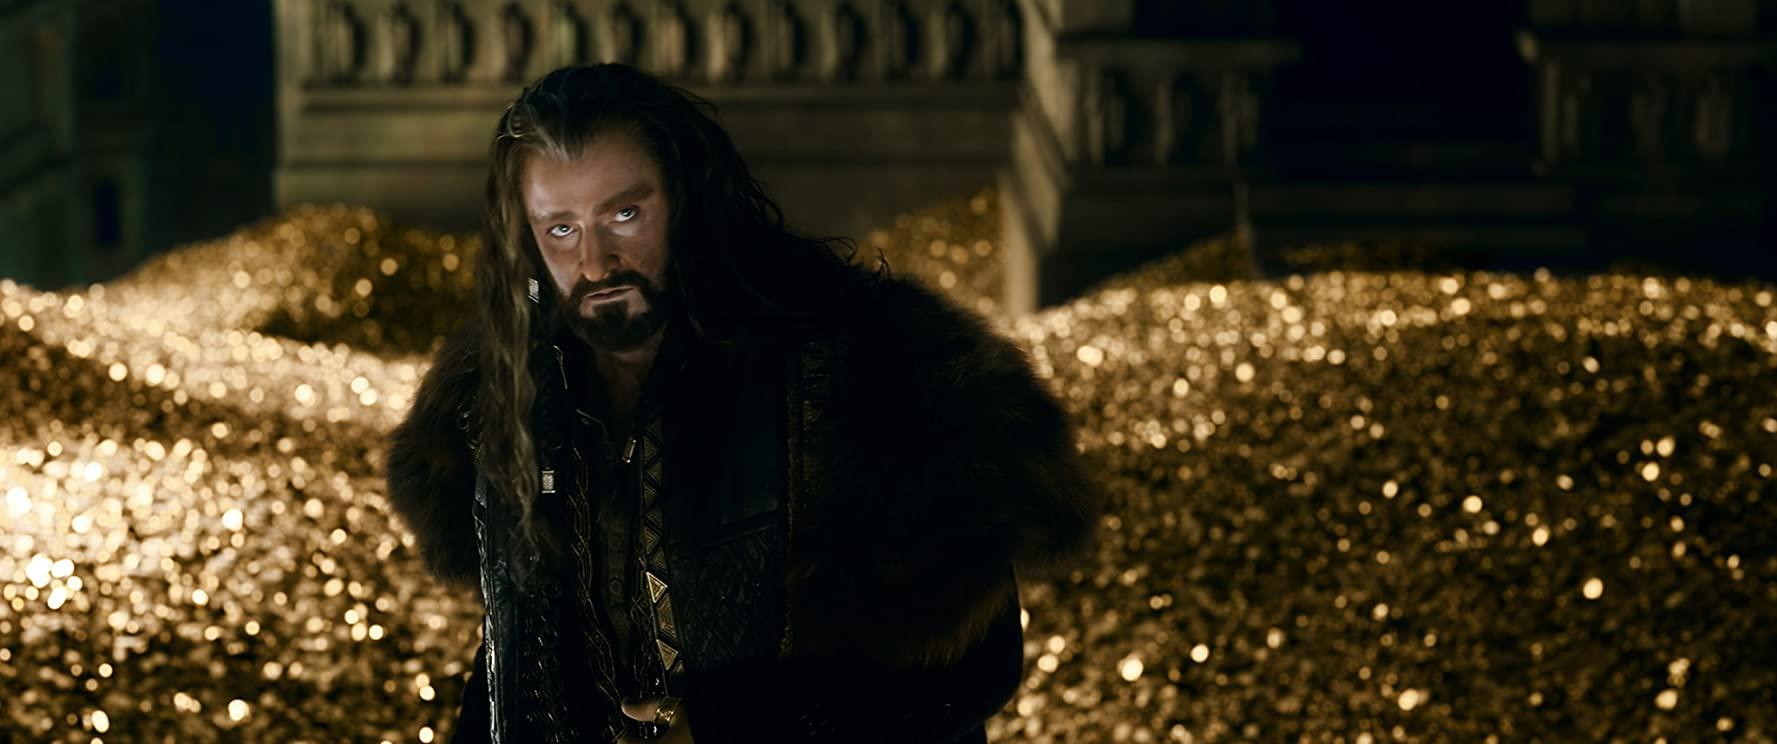 Richard Armitage in The Hobbit: The Battle of the Five Armies (2014)